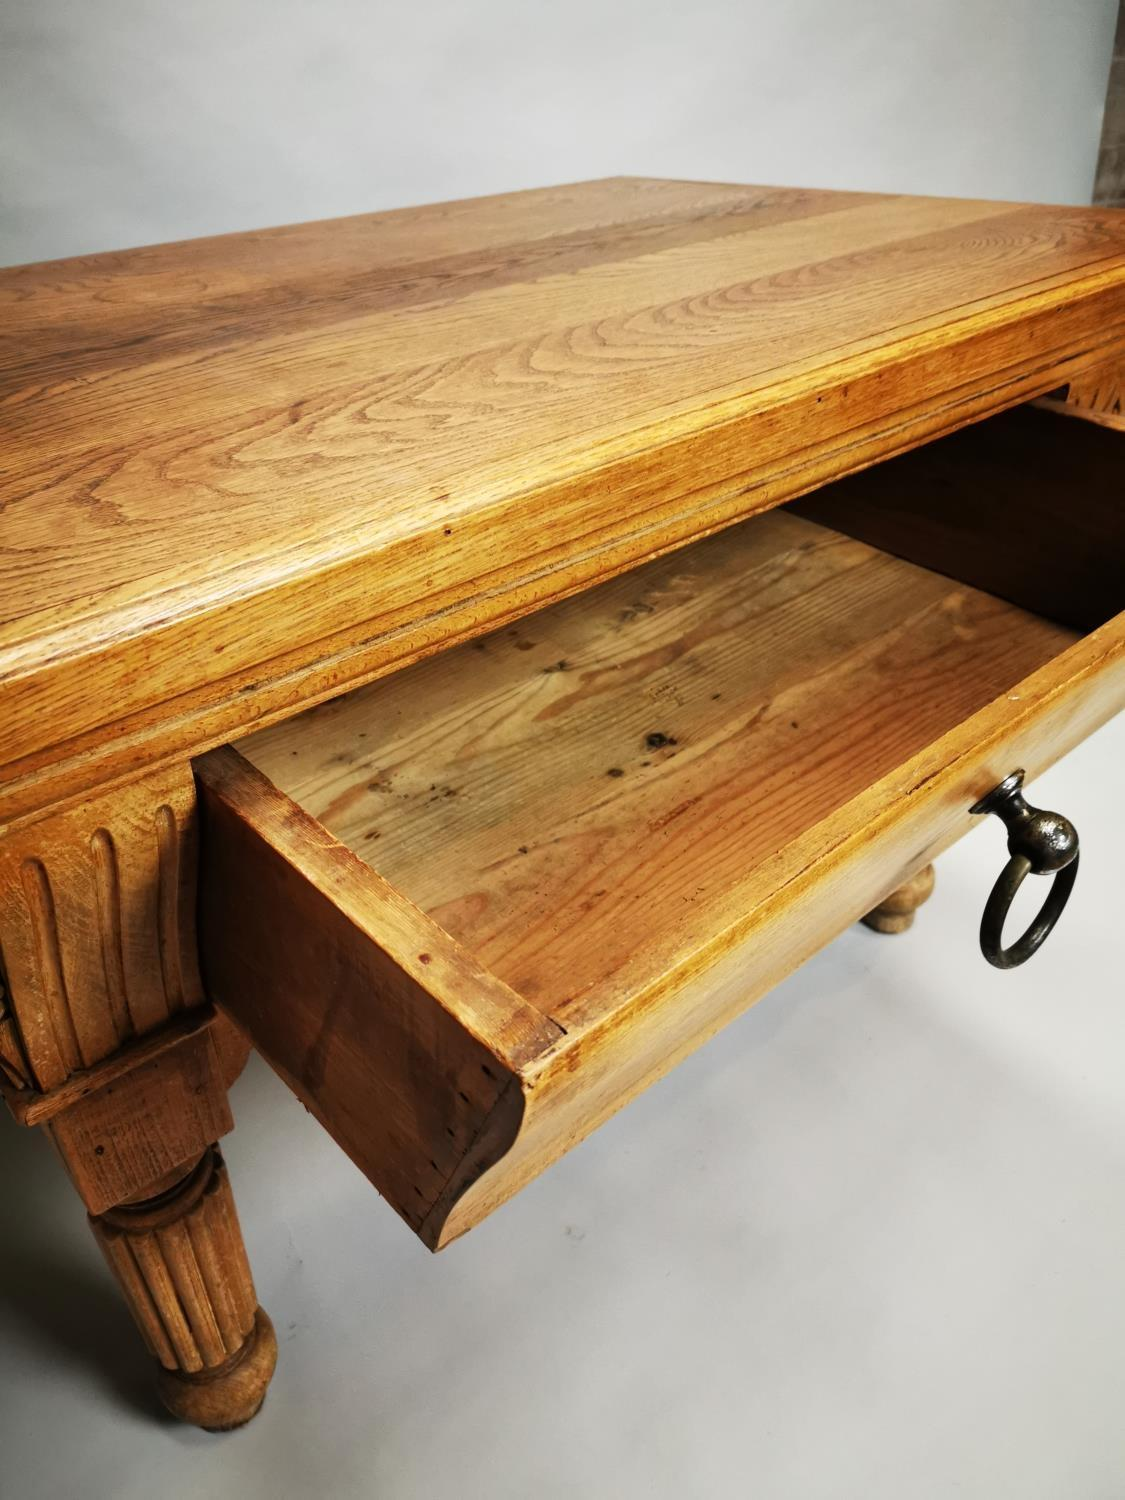 Early 20th C. pine and oak butchers table - Image 10 of 12